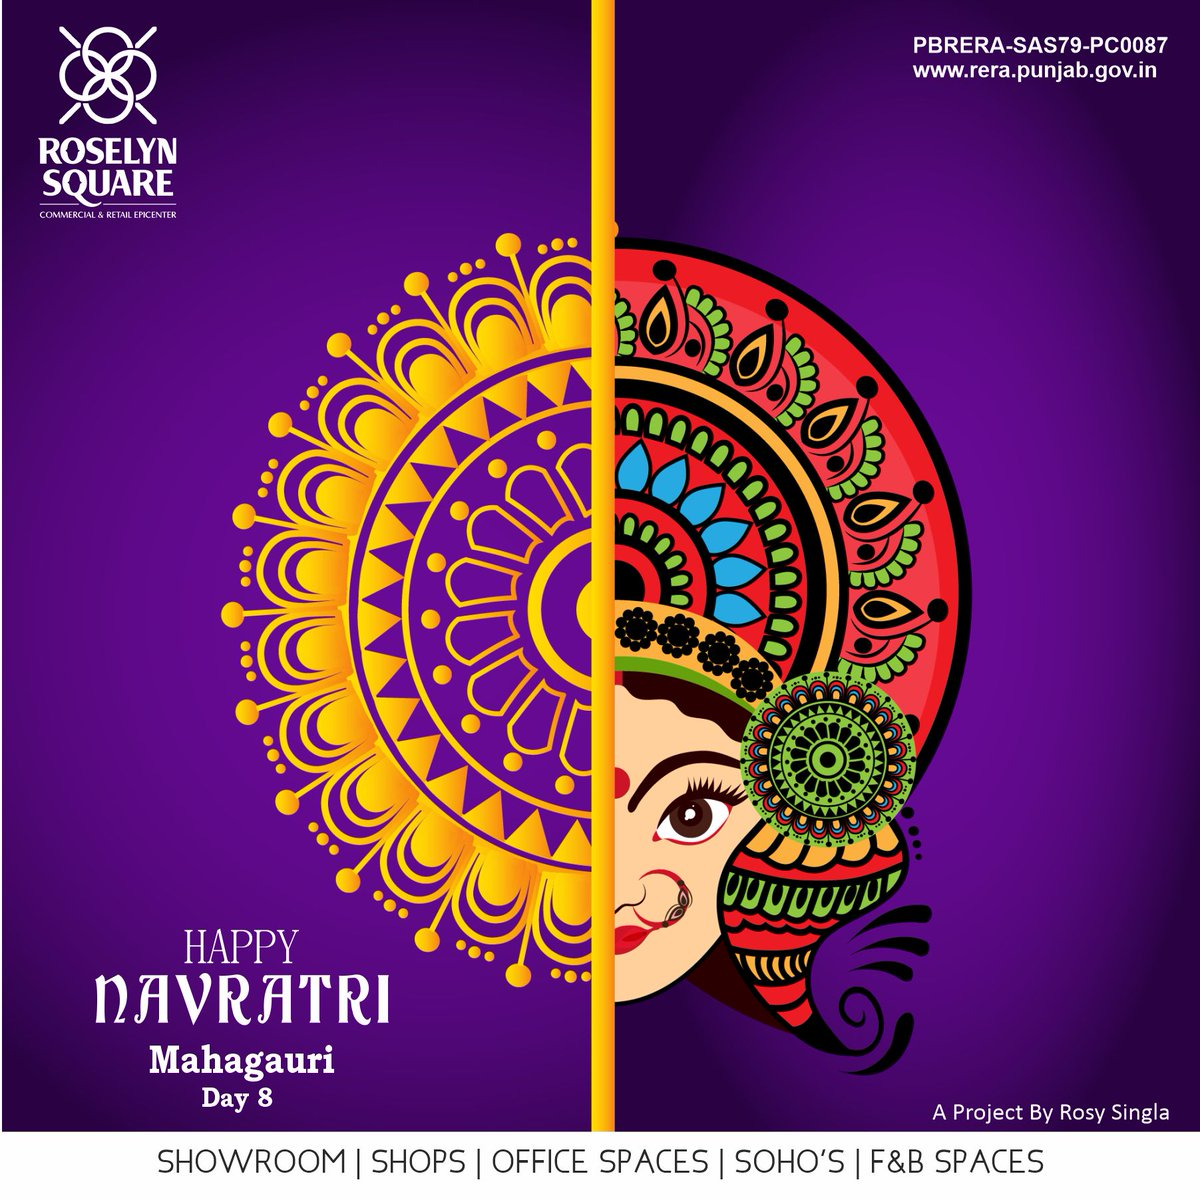 On this pious festival of Navratri, Roselyn Square wishes may you always be Happy and Victorious.  Happy 8th Day of the Navratri!  #Maamahagauri #Roselynsquare #Victory #CommercialPlaza #Zirakpur #HappyNavratri #Happy